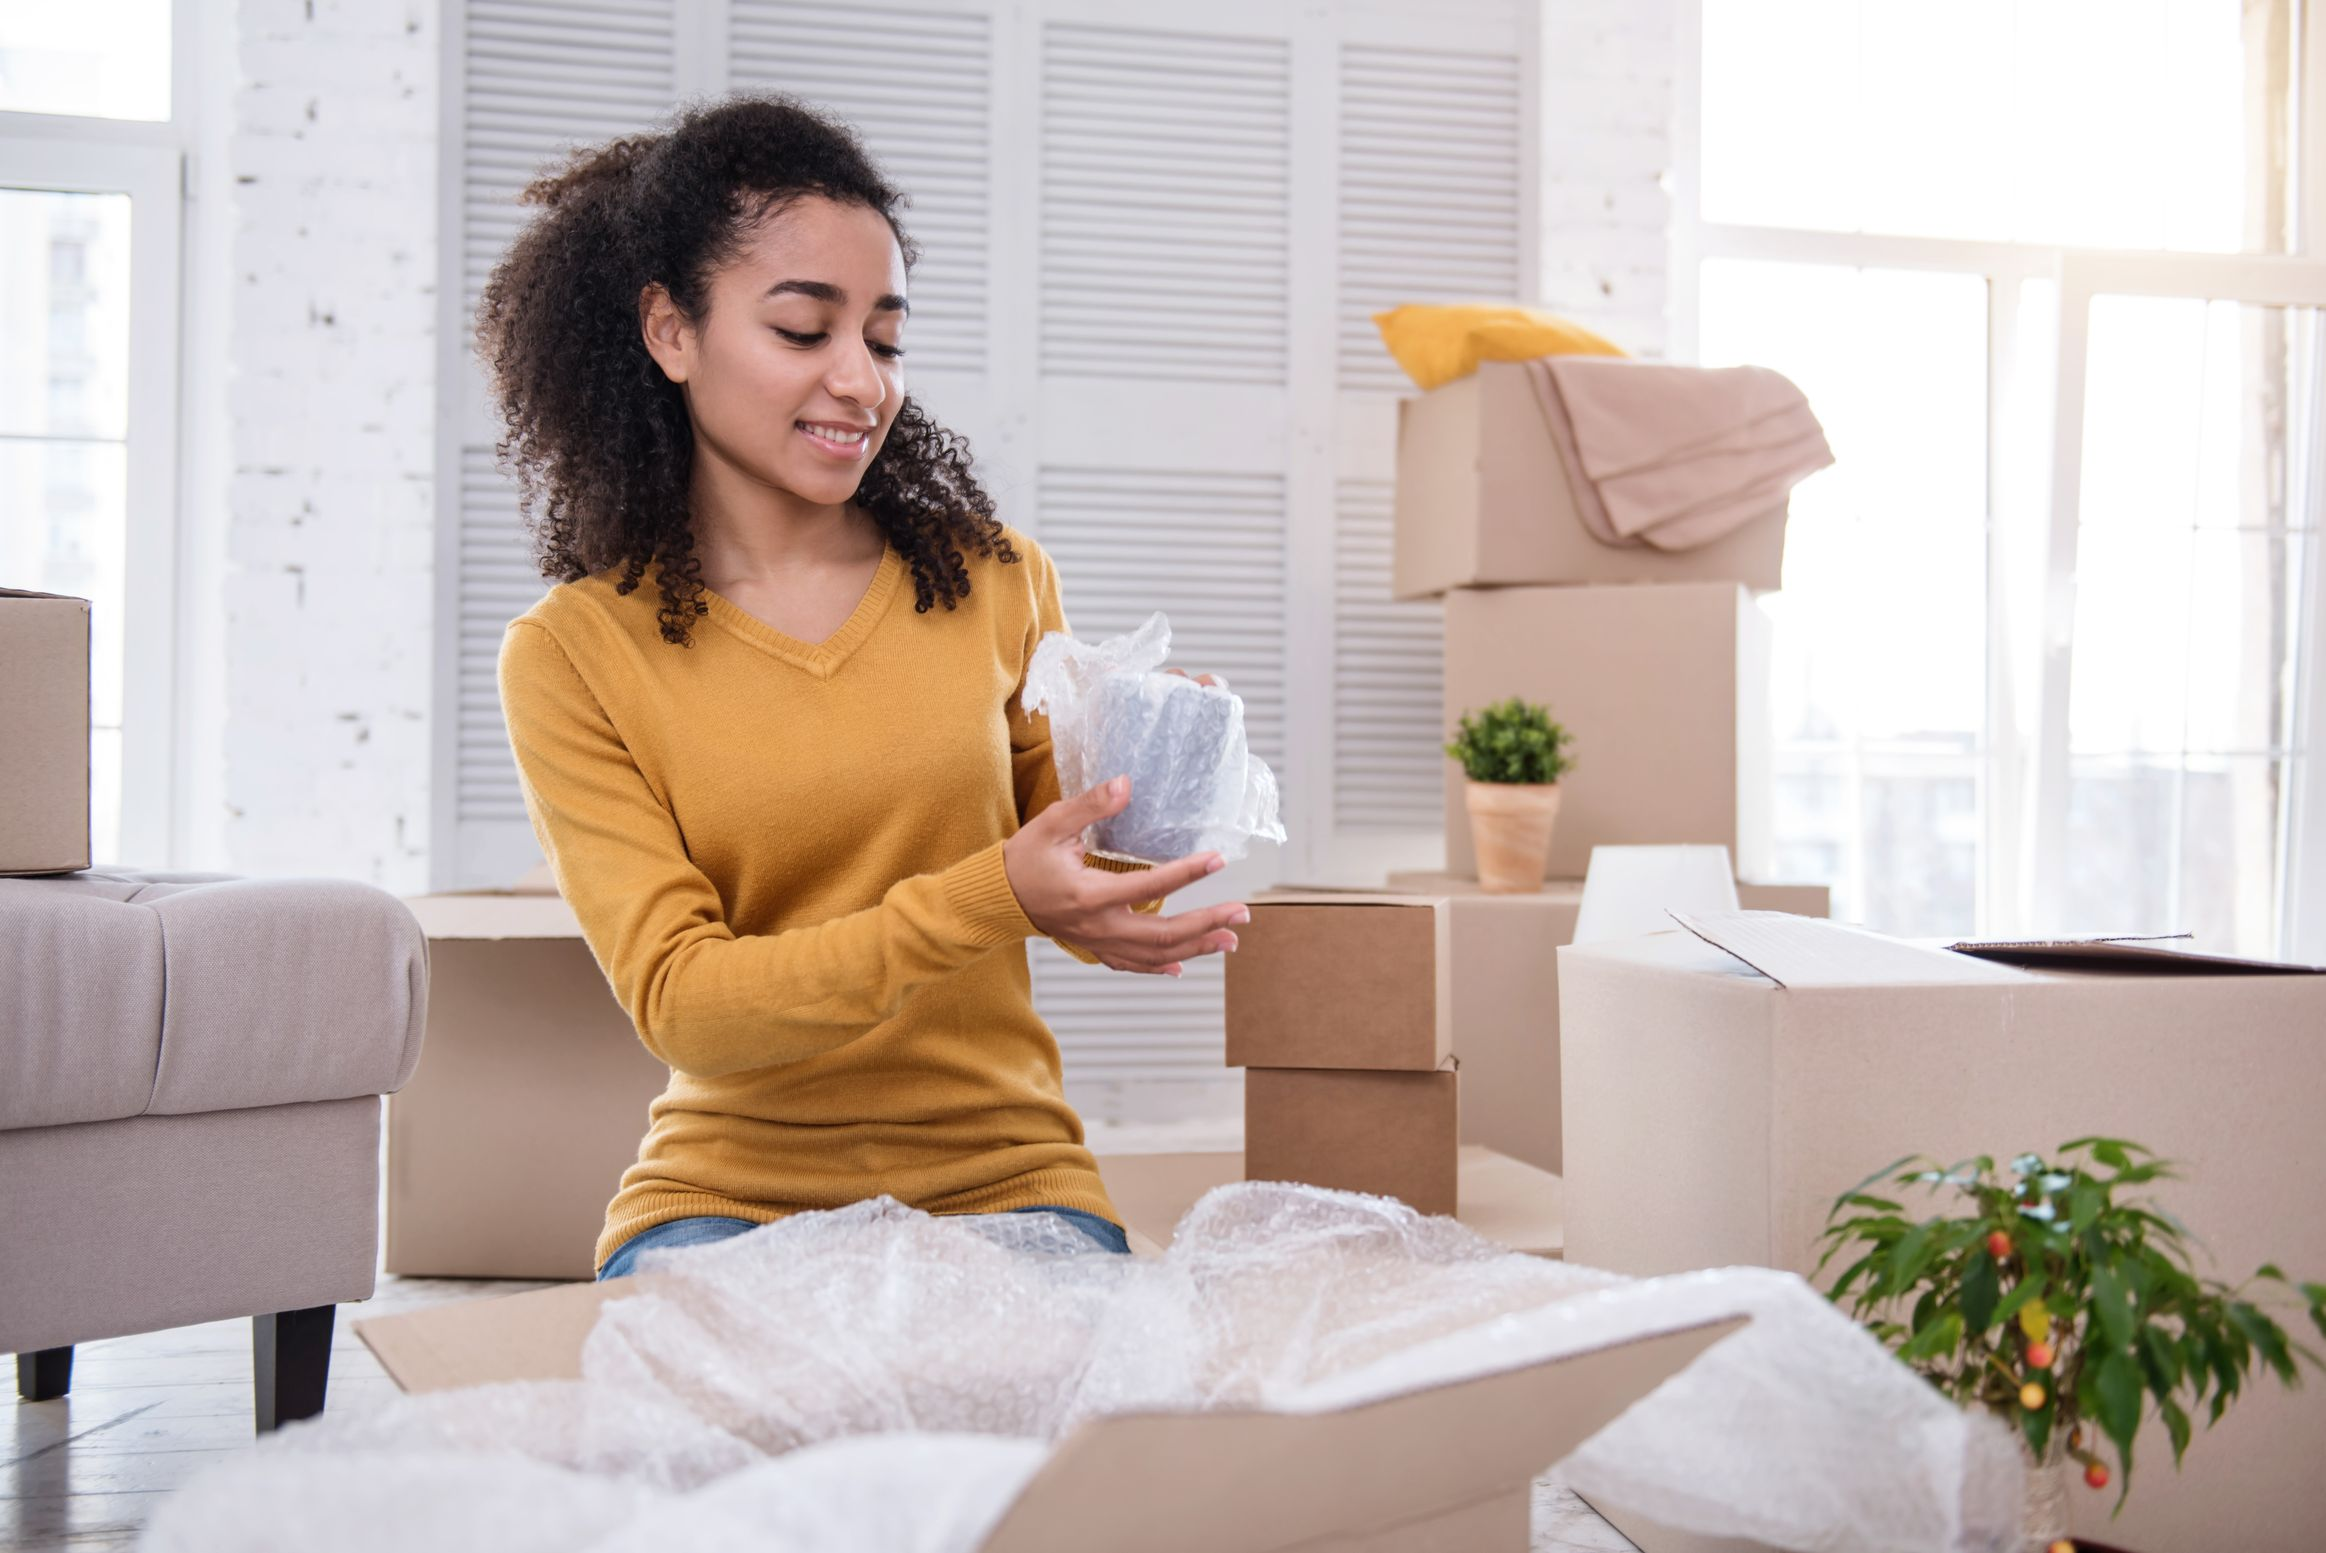 A girl at home wrapping up a cup in a bubble wrap without any help from movers